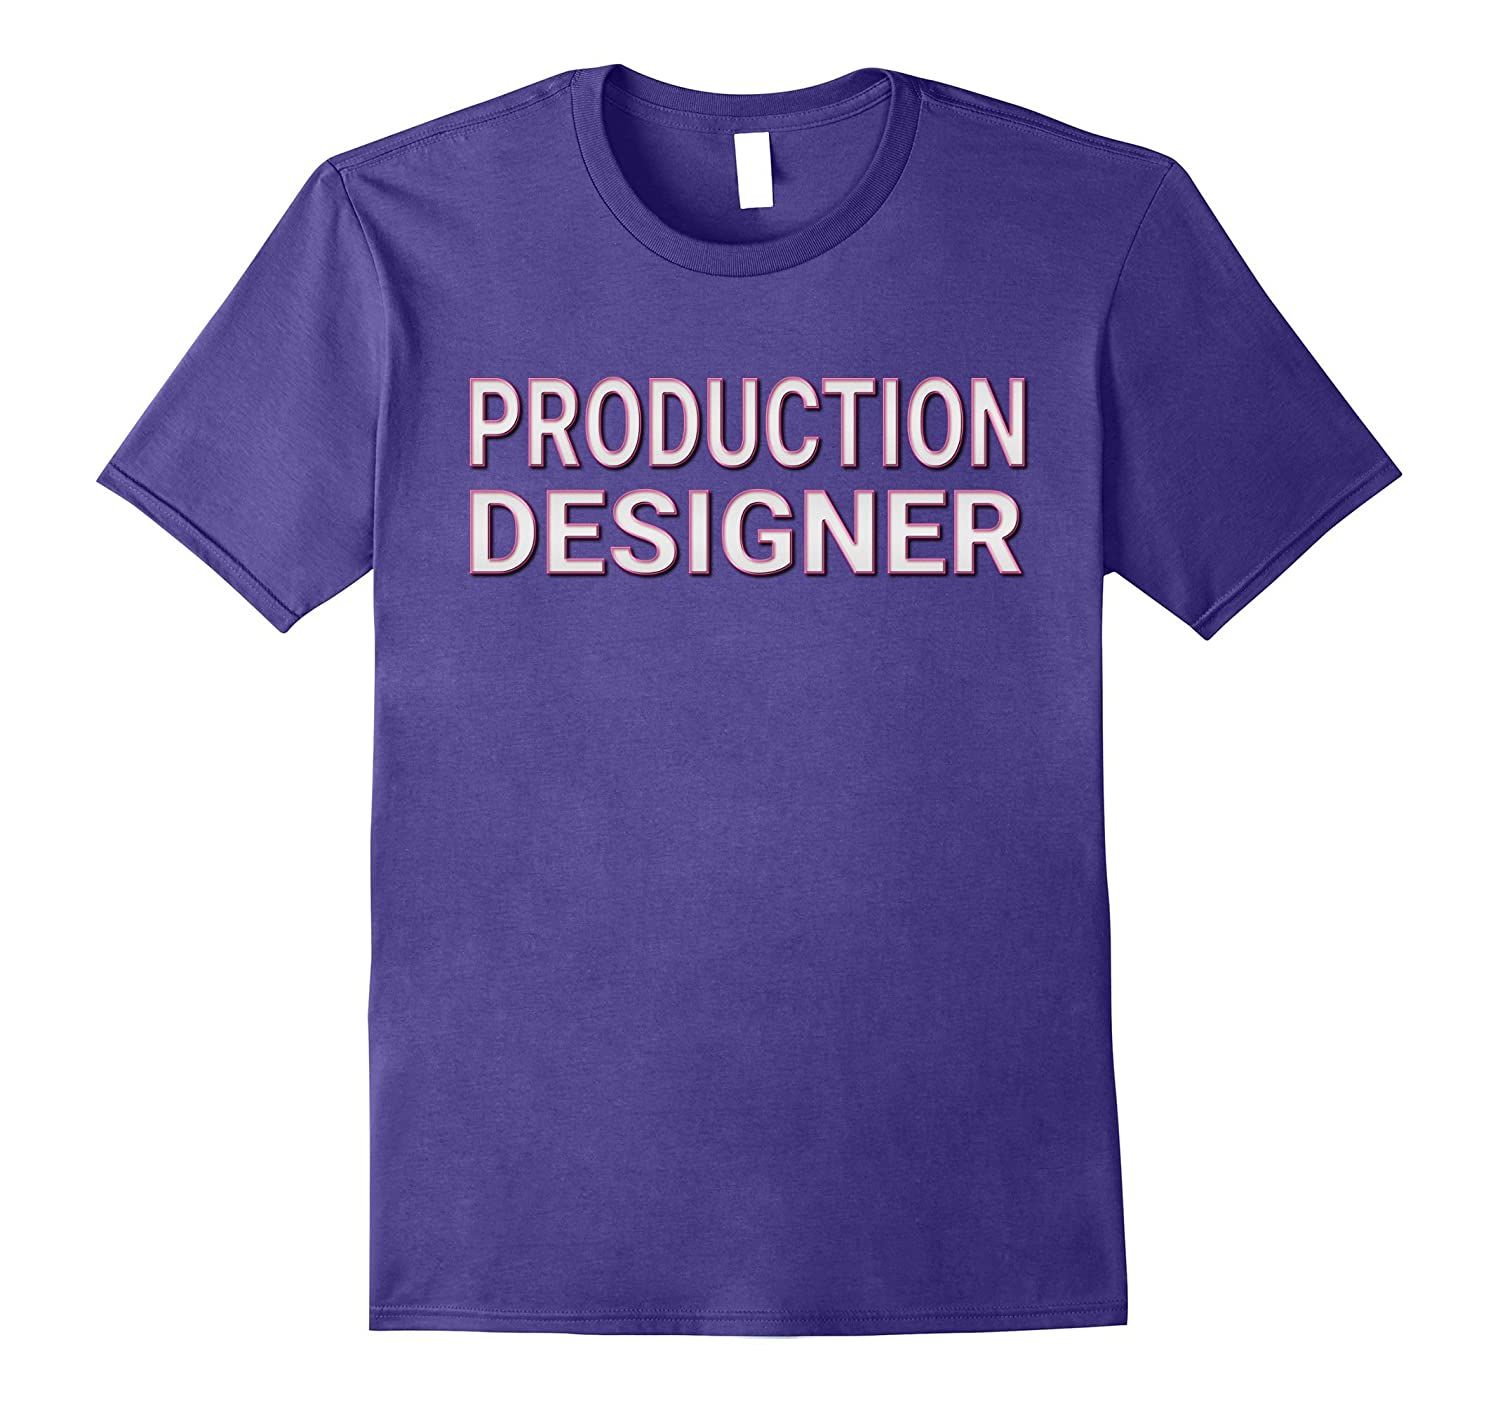 Production Designer Matching Film Crew TV Set T Shirts-PL